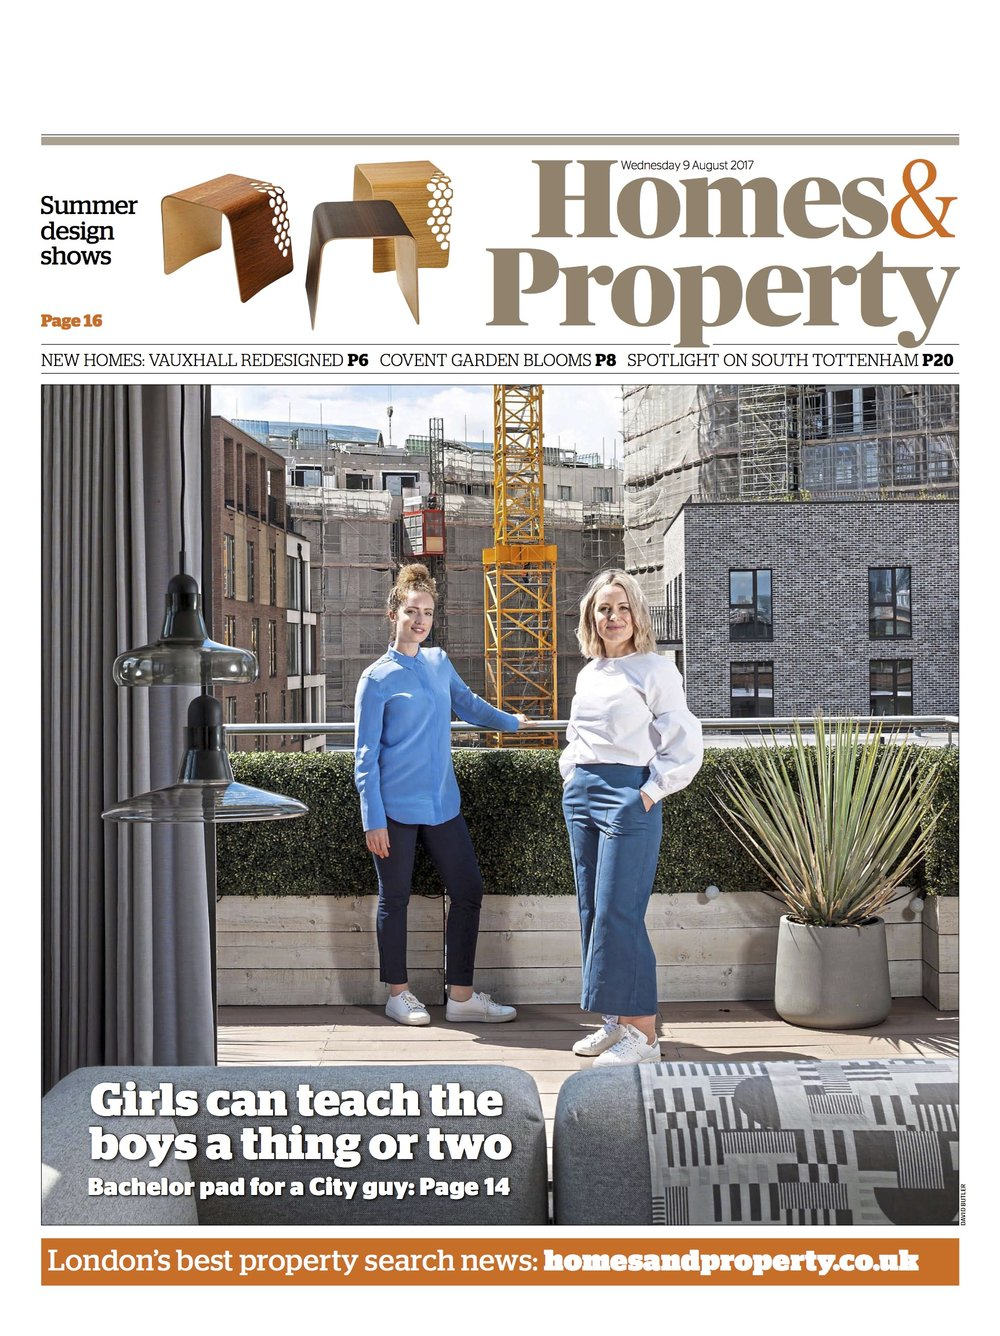 Homes & Property 9th Aug 2017 copy.jpg